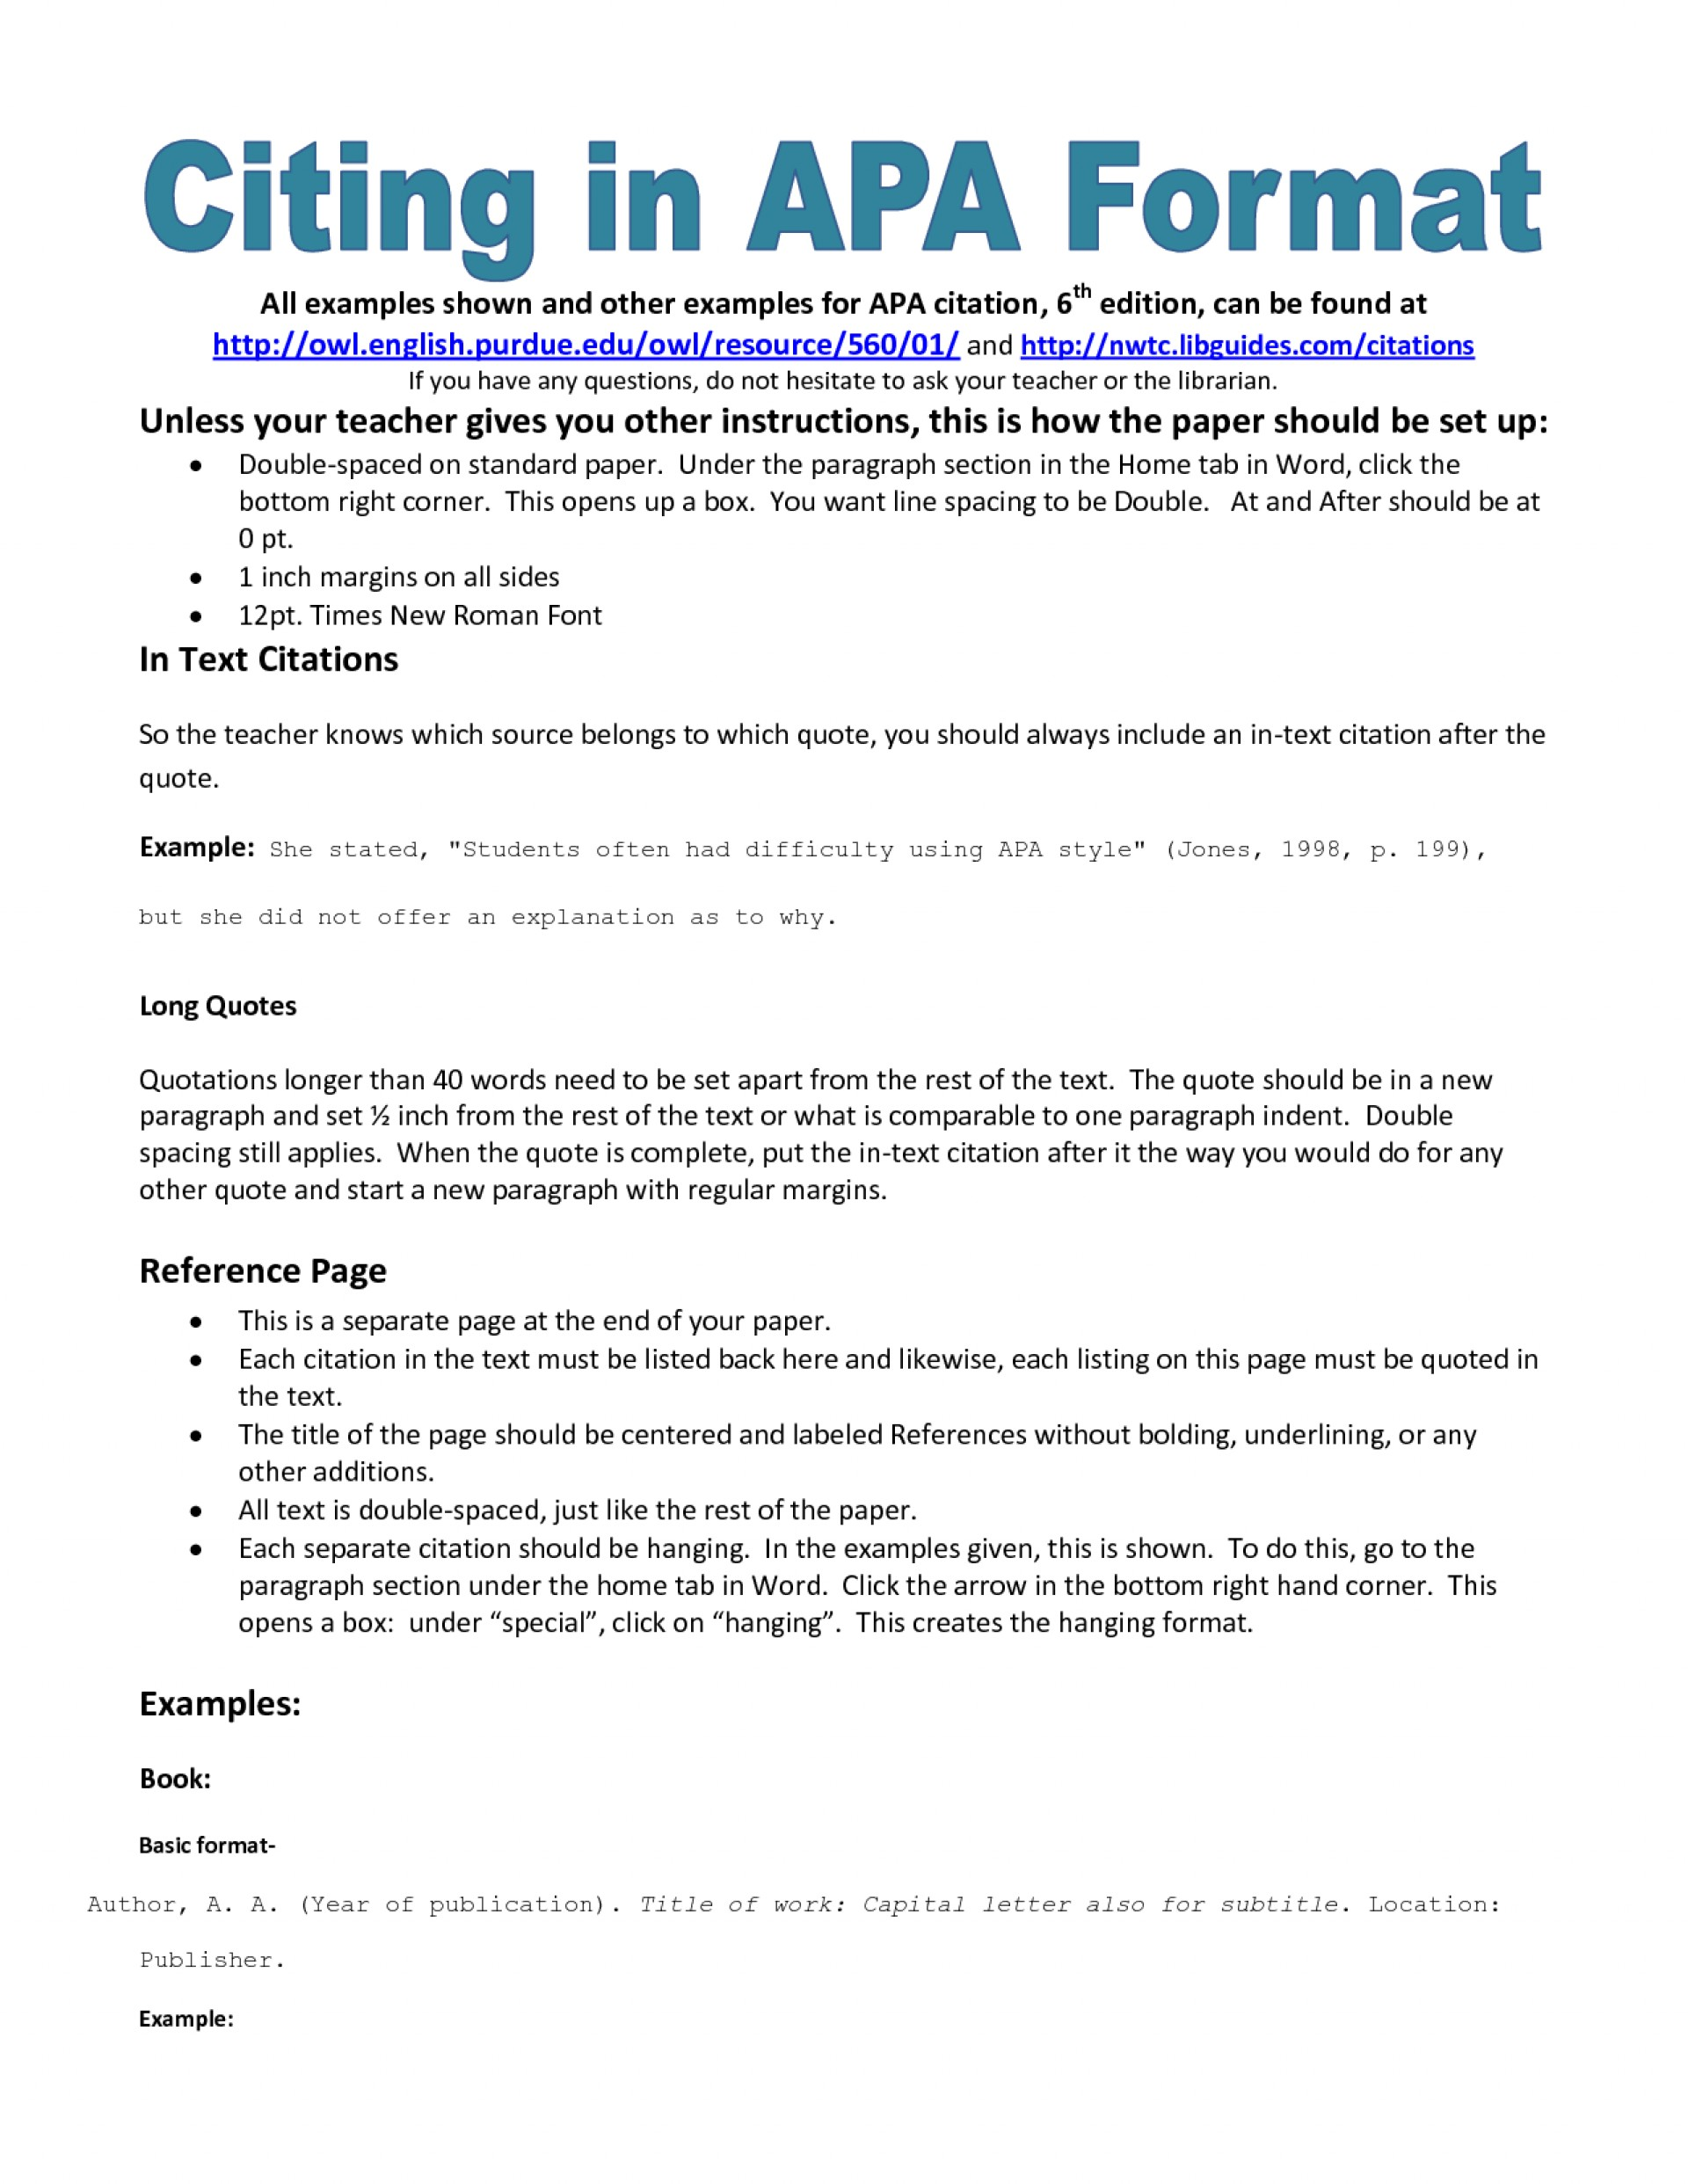 006 Apa Essay Format Breathtaking Writing Example Google Docs Research Paper Template 1920